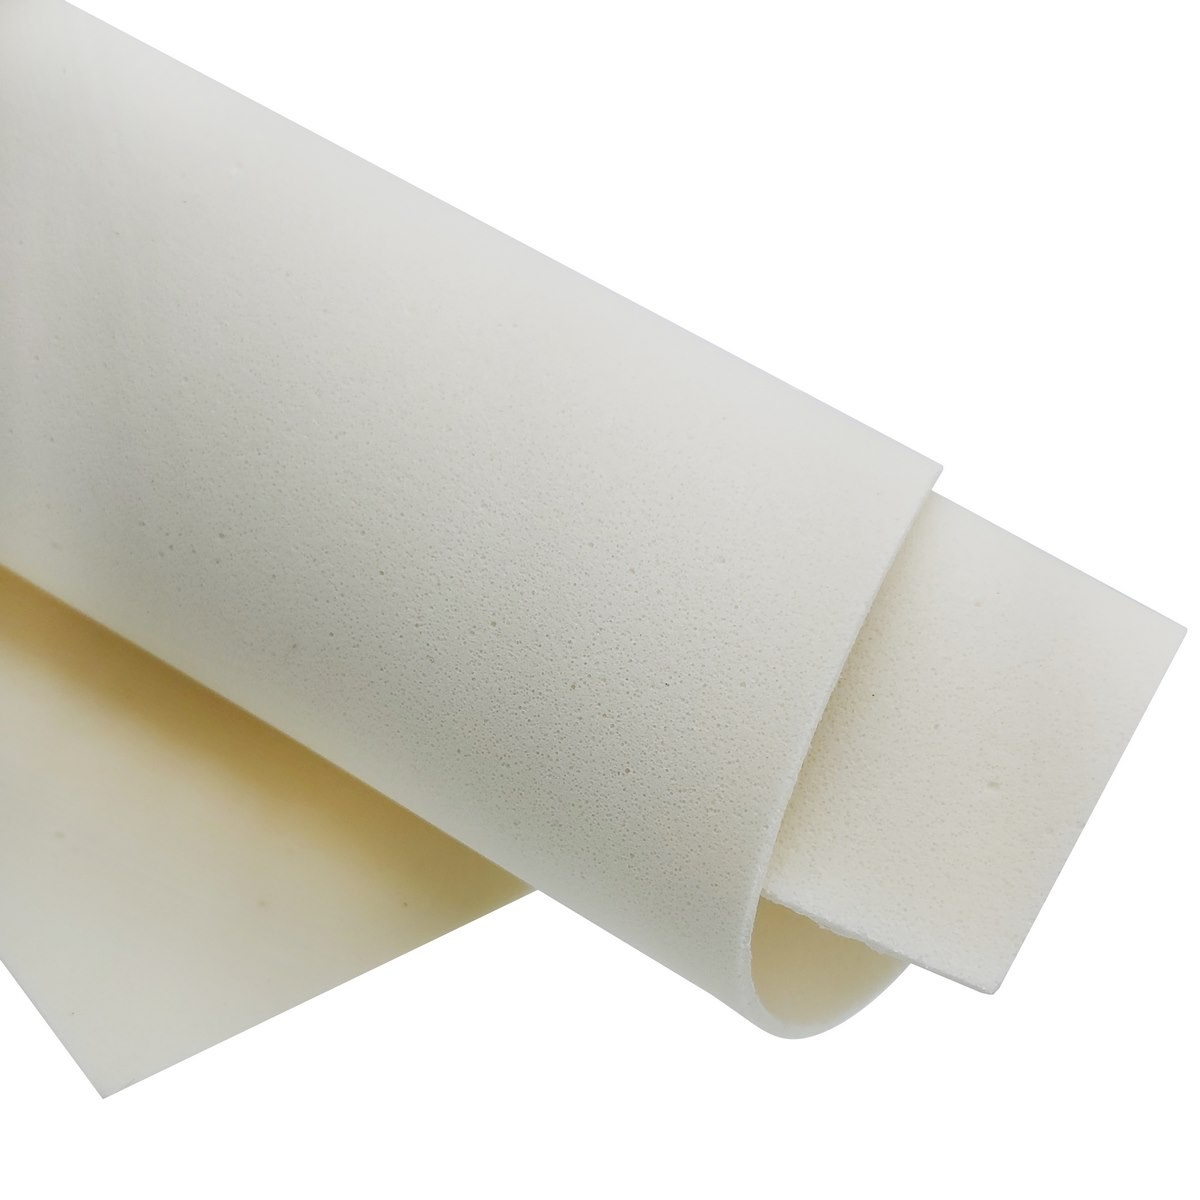 Foam Sheets A4 Size Without Sticker Pack of 10 Cream